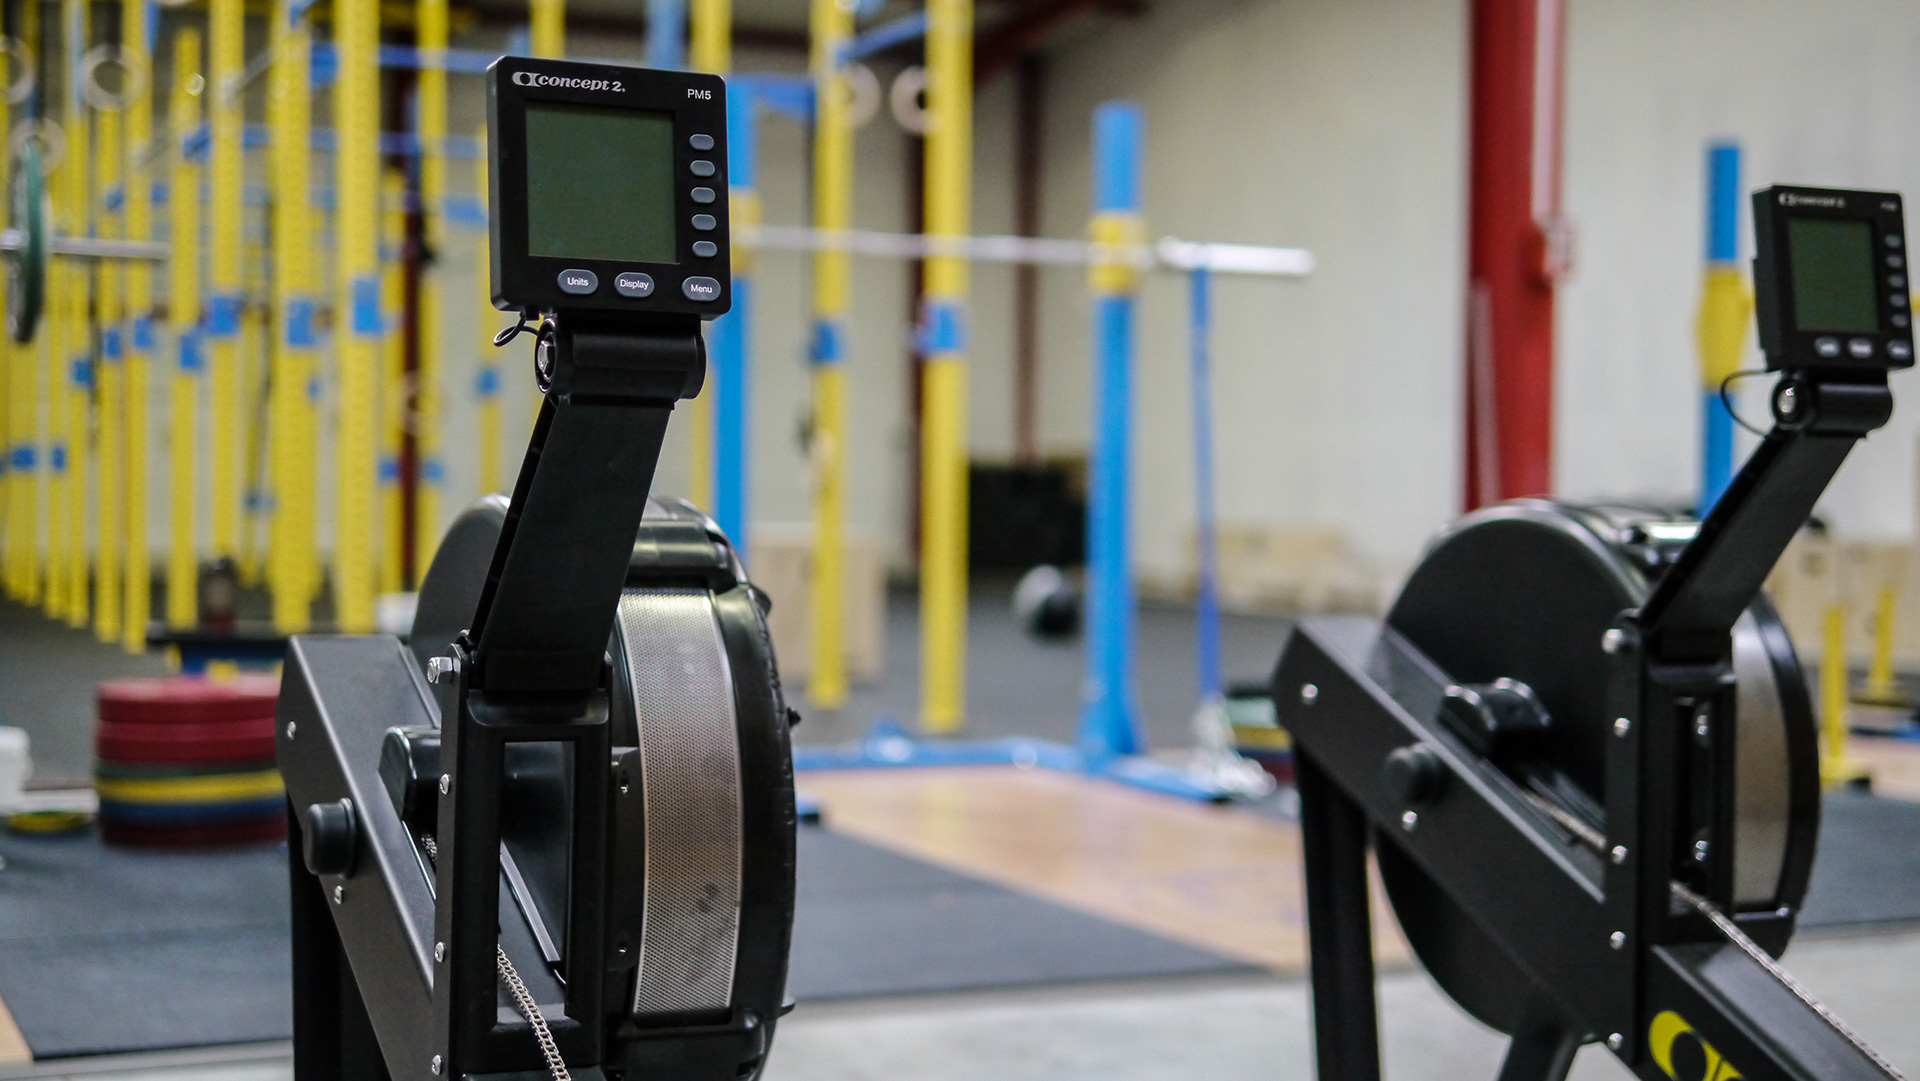 crossfit electron zone free access